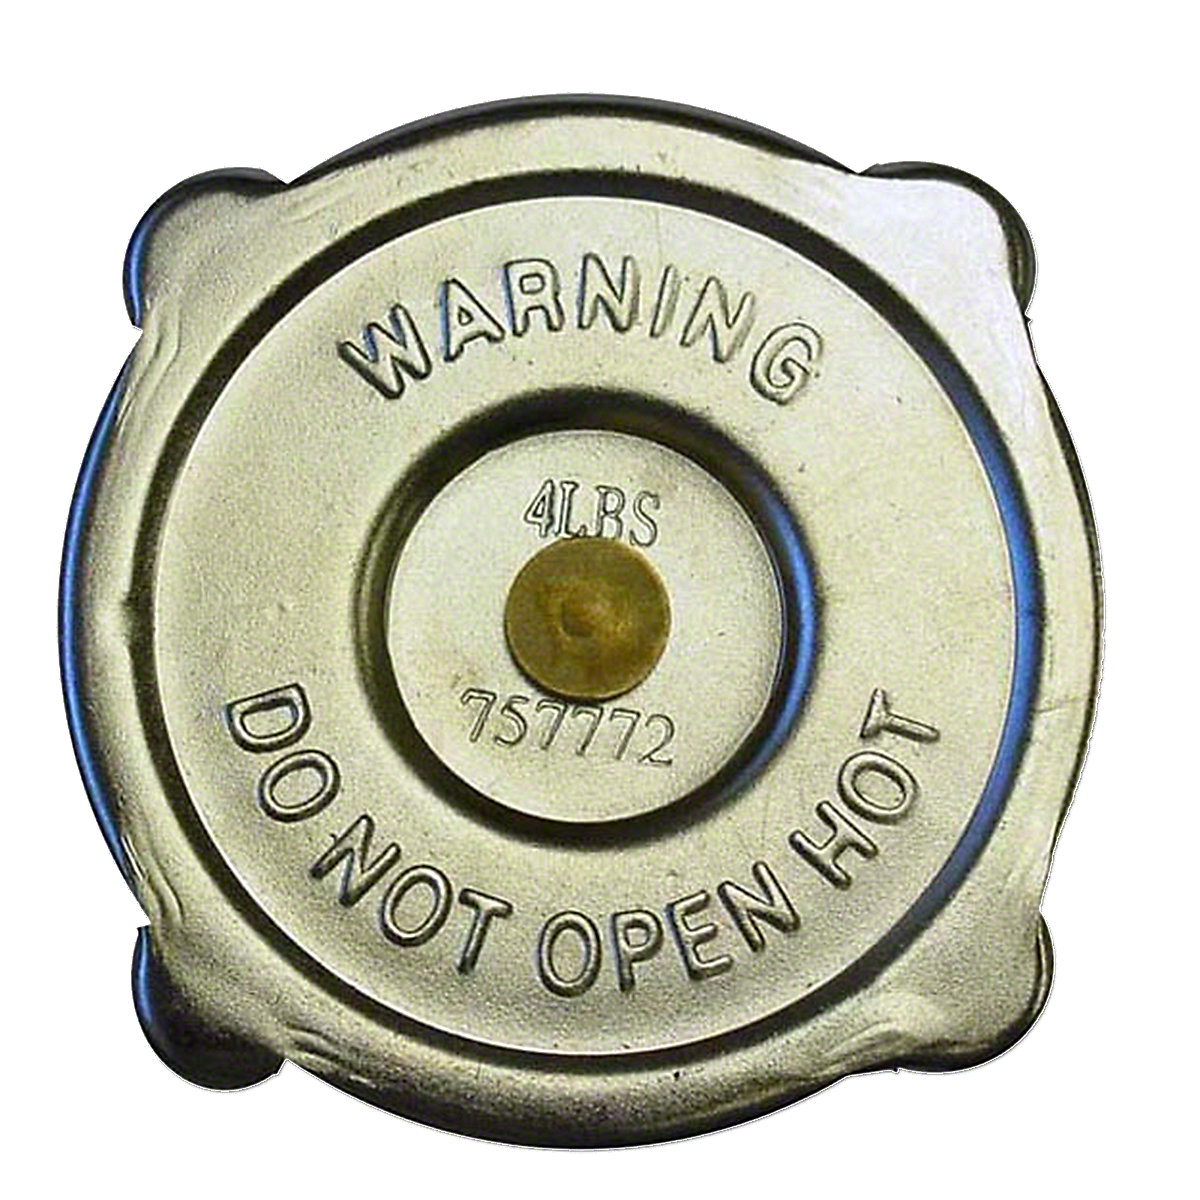 Radiator Cap For Massey Harris: 101 Jr, 101 Sr, 102 Jr, 102 Sr, 30, 33, 44, 55, 333, 333K, 33K, 44 Special, 44-6, 444, 444K, 44K, 555, 555K, 55K.